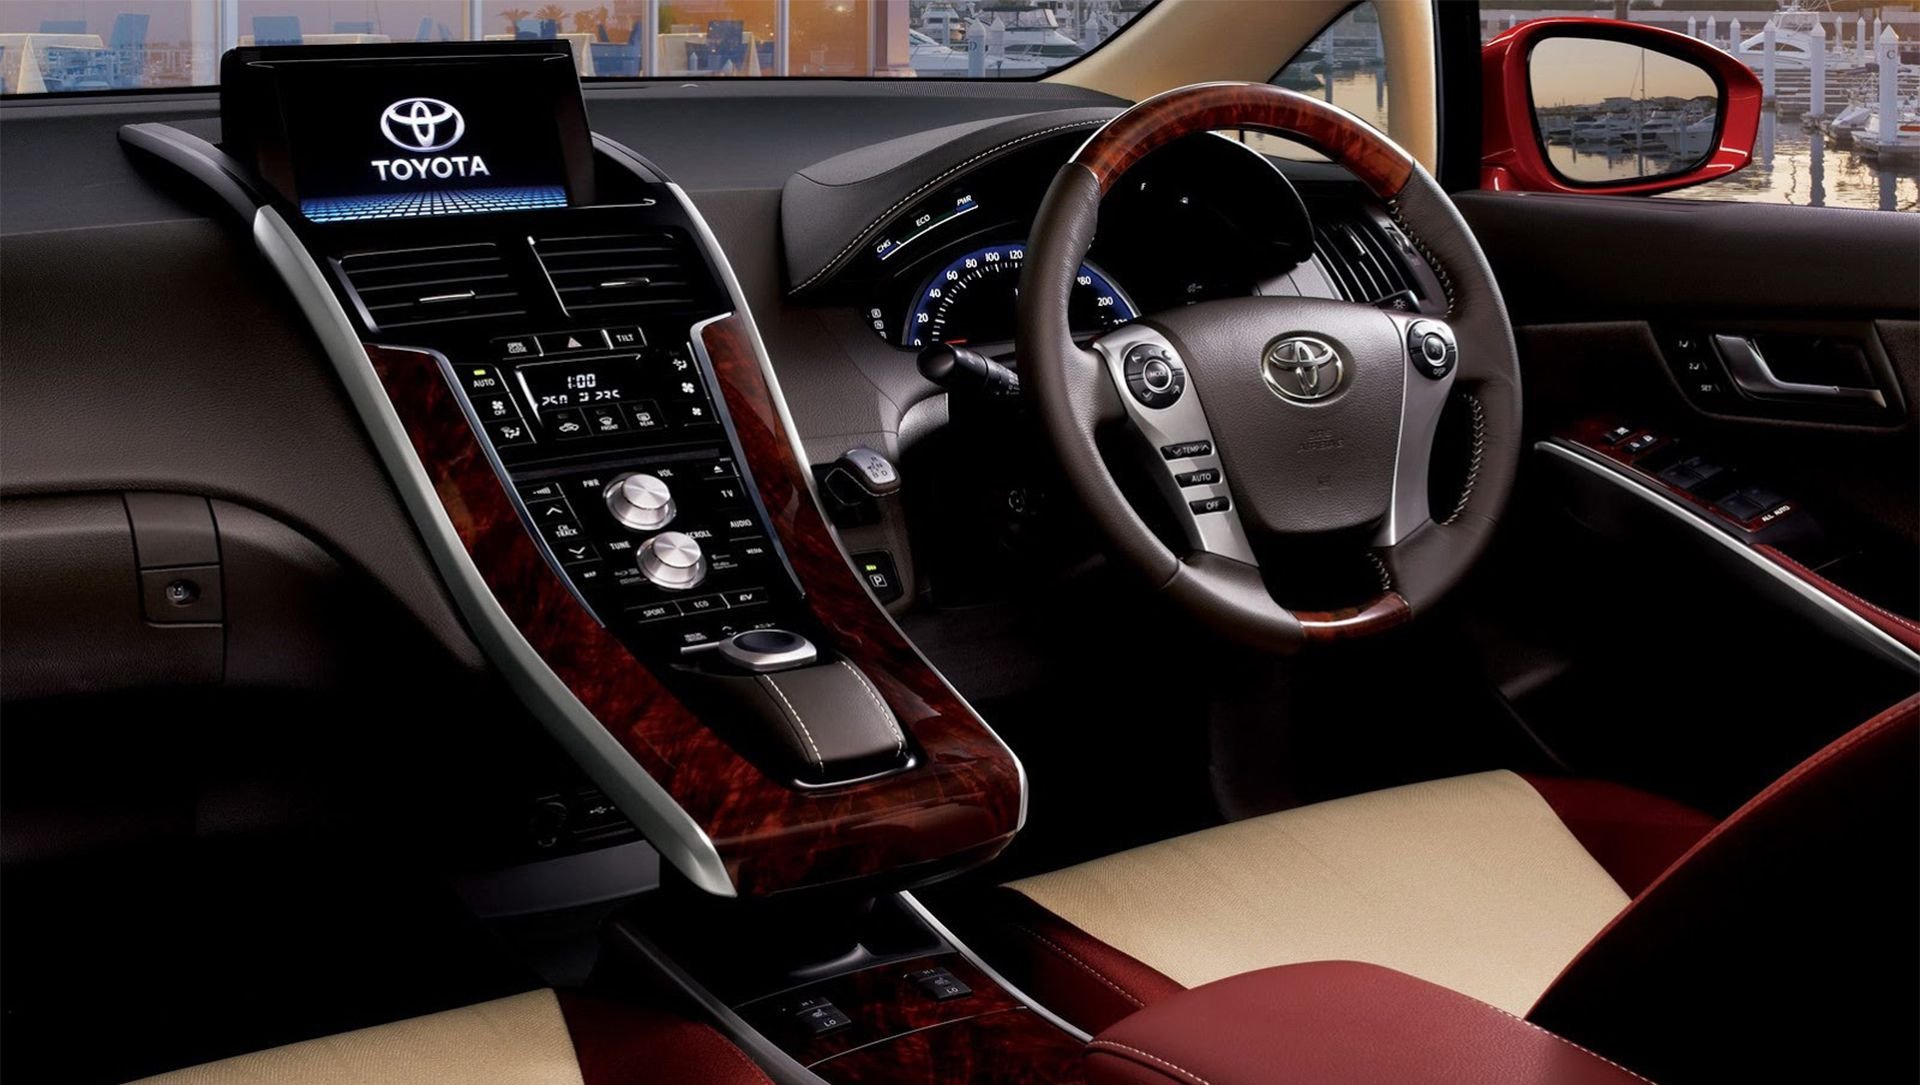 ... Toyota Fashions 2014 Sai Facelift After The Camry And Corolla ...